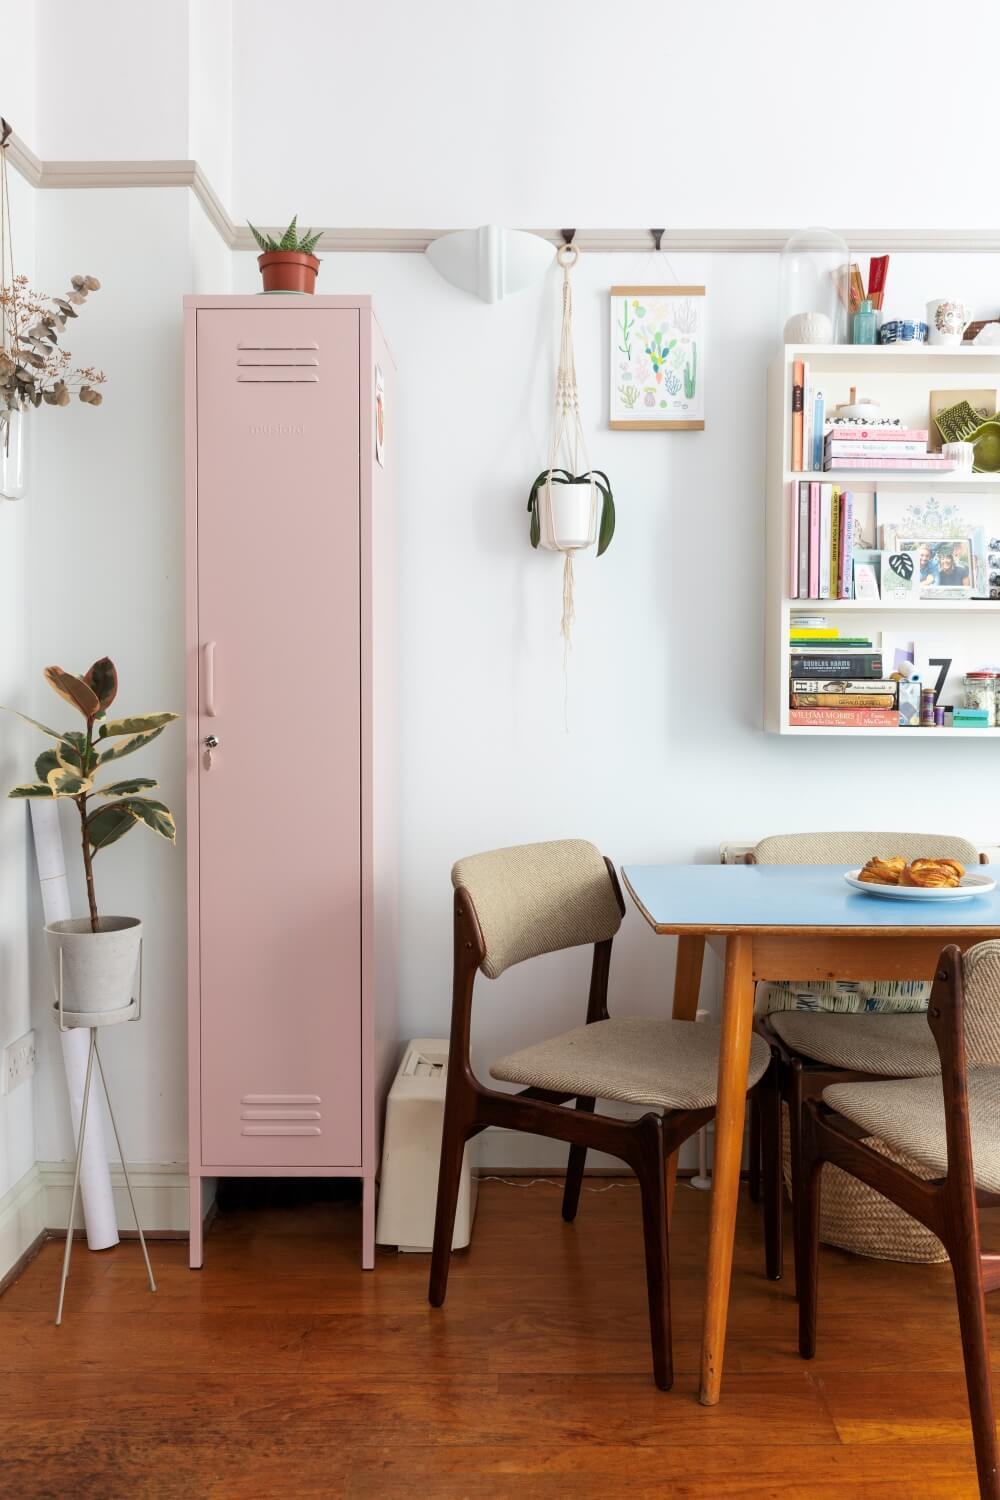 pink Mustard locker in the living room for extra storage next to dining table